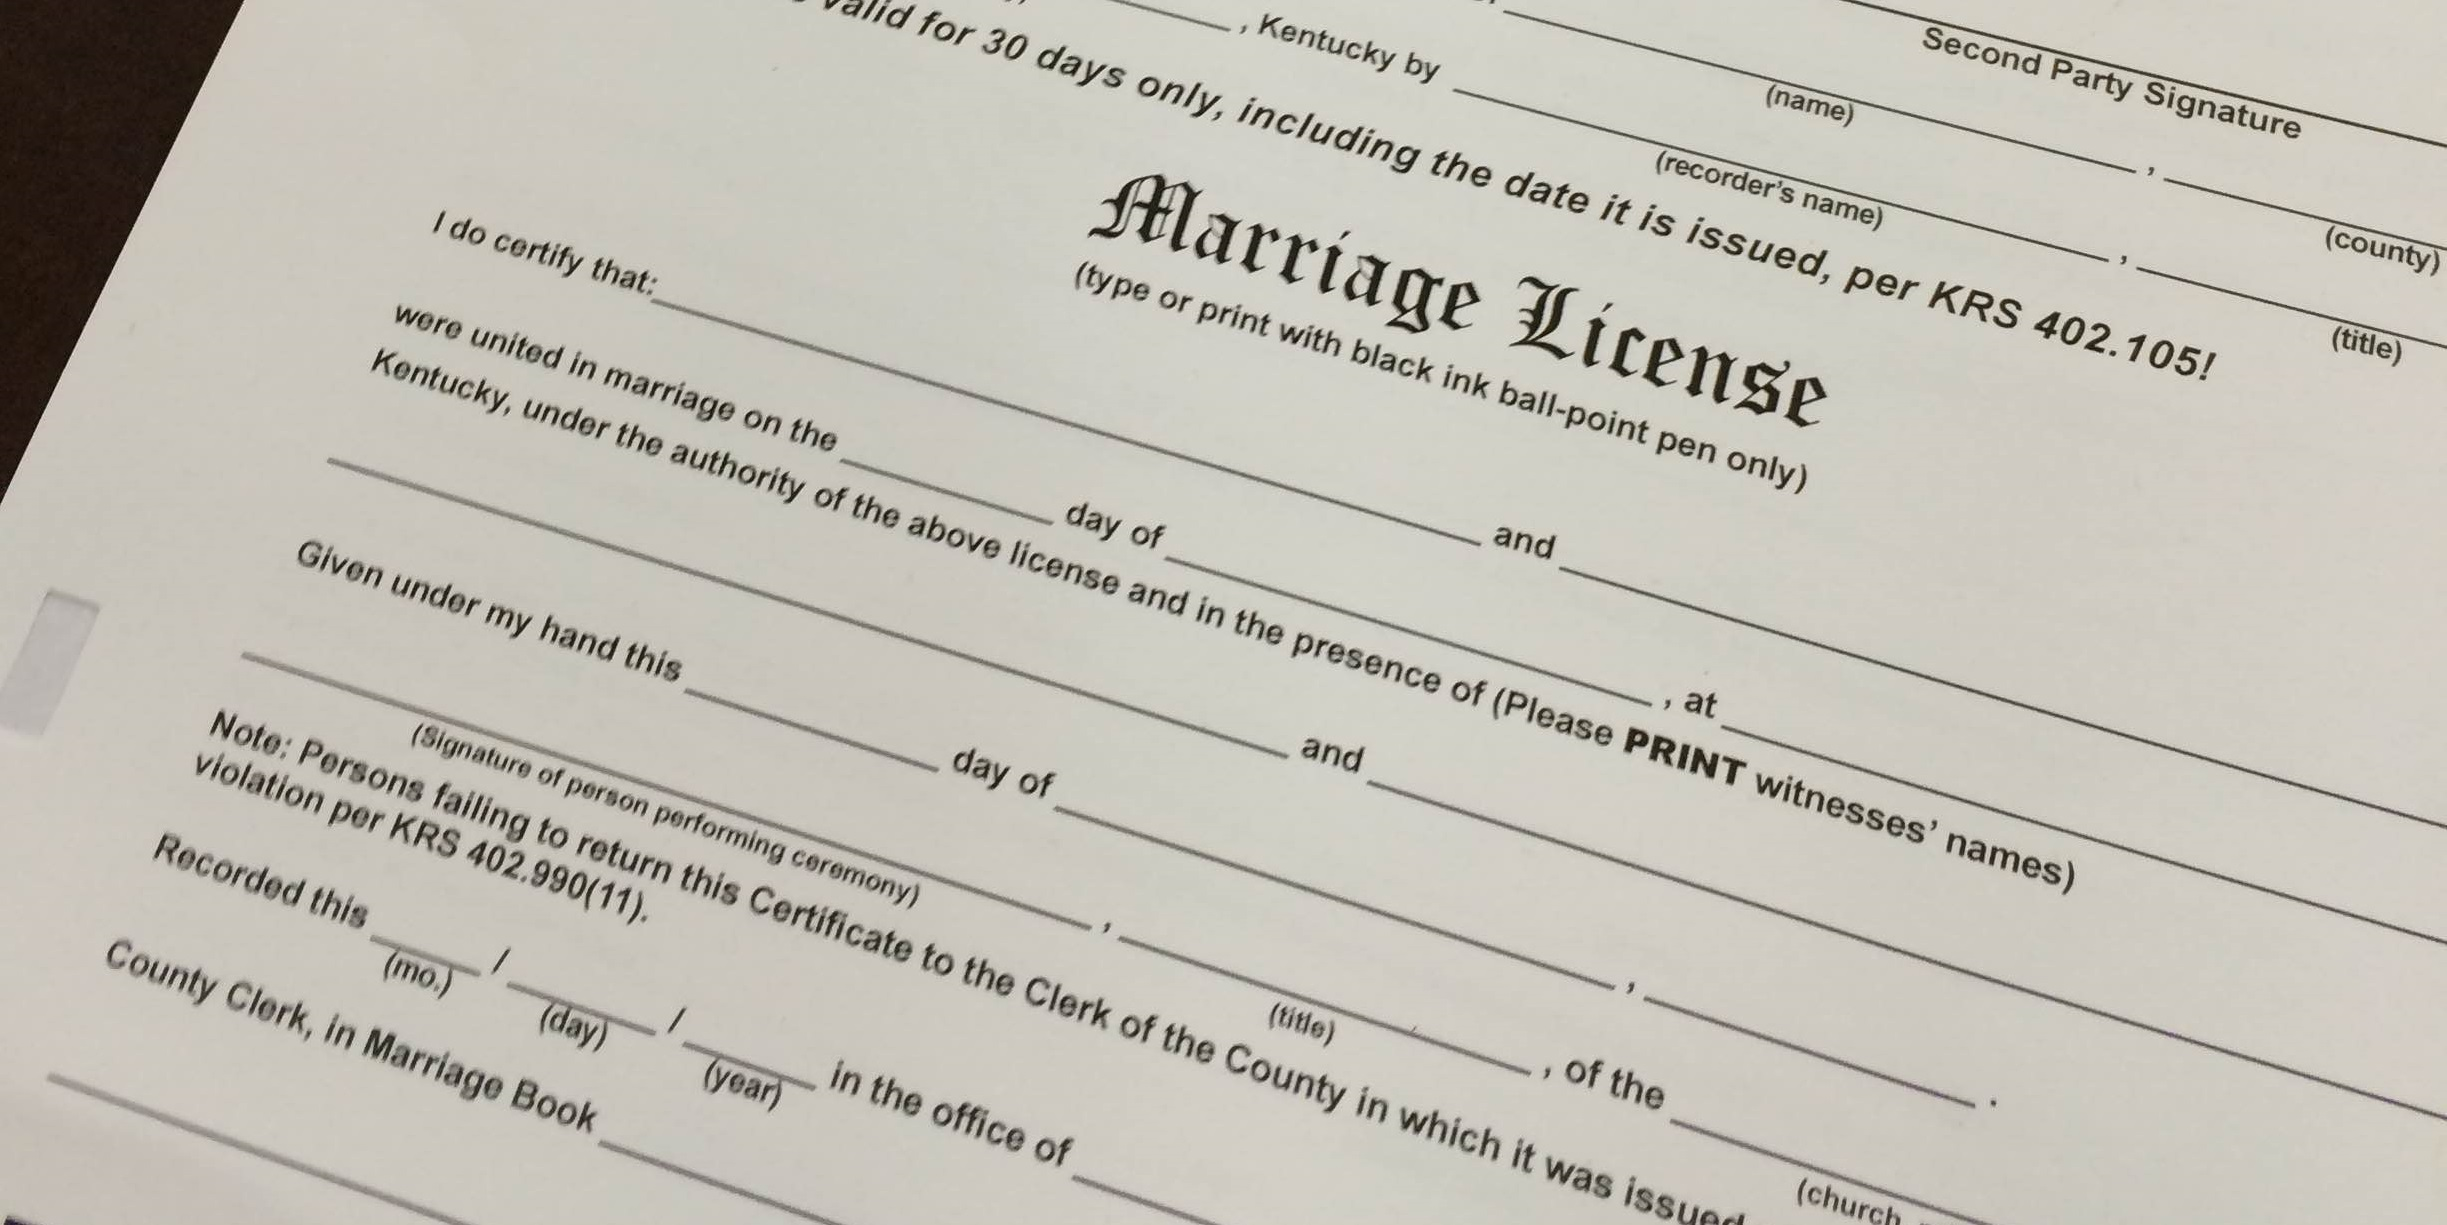 Couples Seek Legal Costs in Kentucky Marriage License Case | WKMS